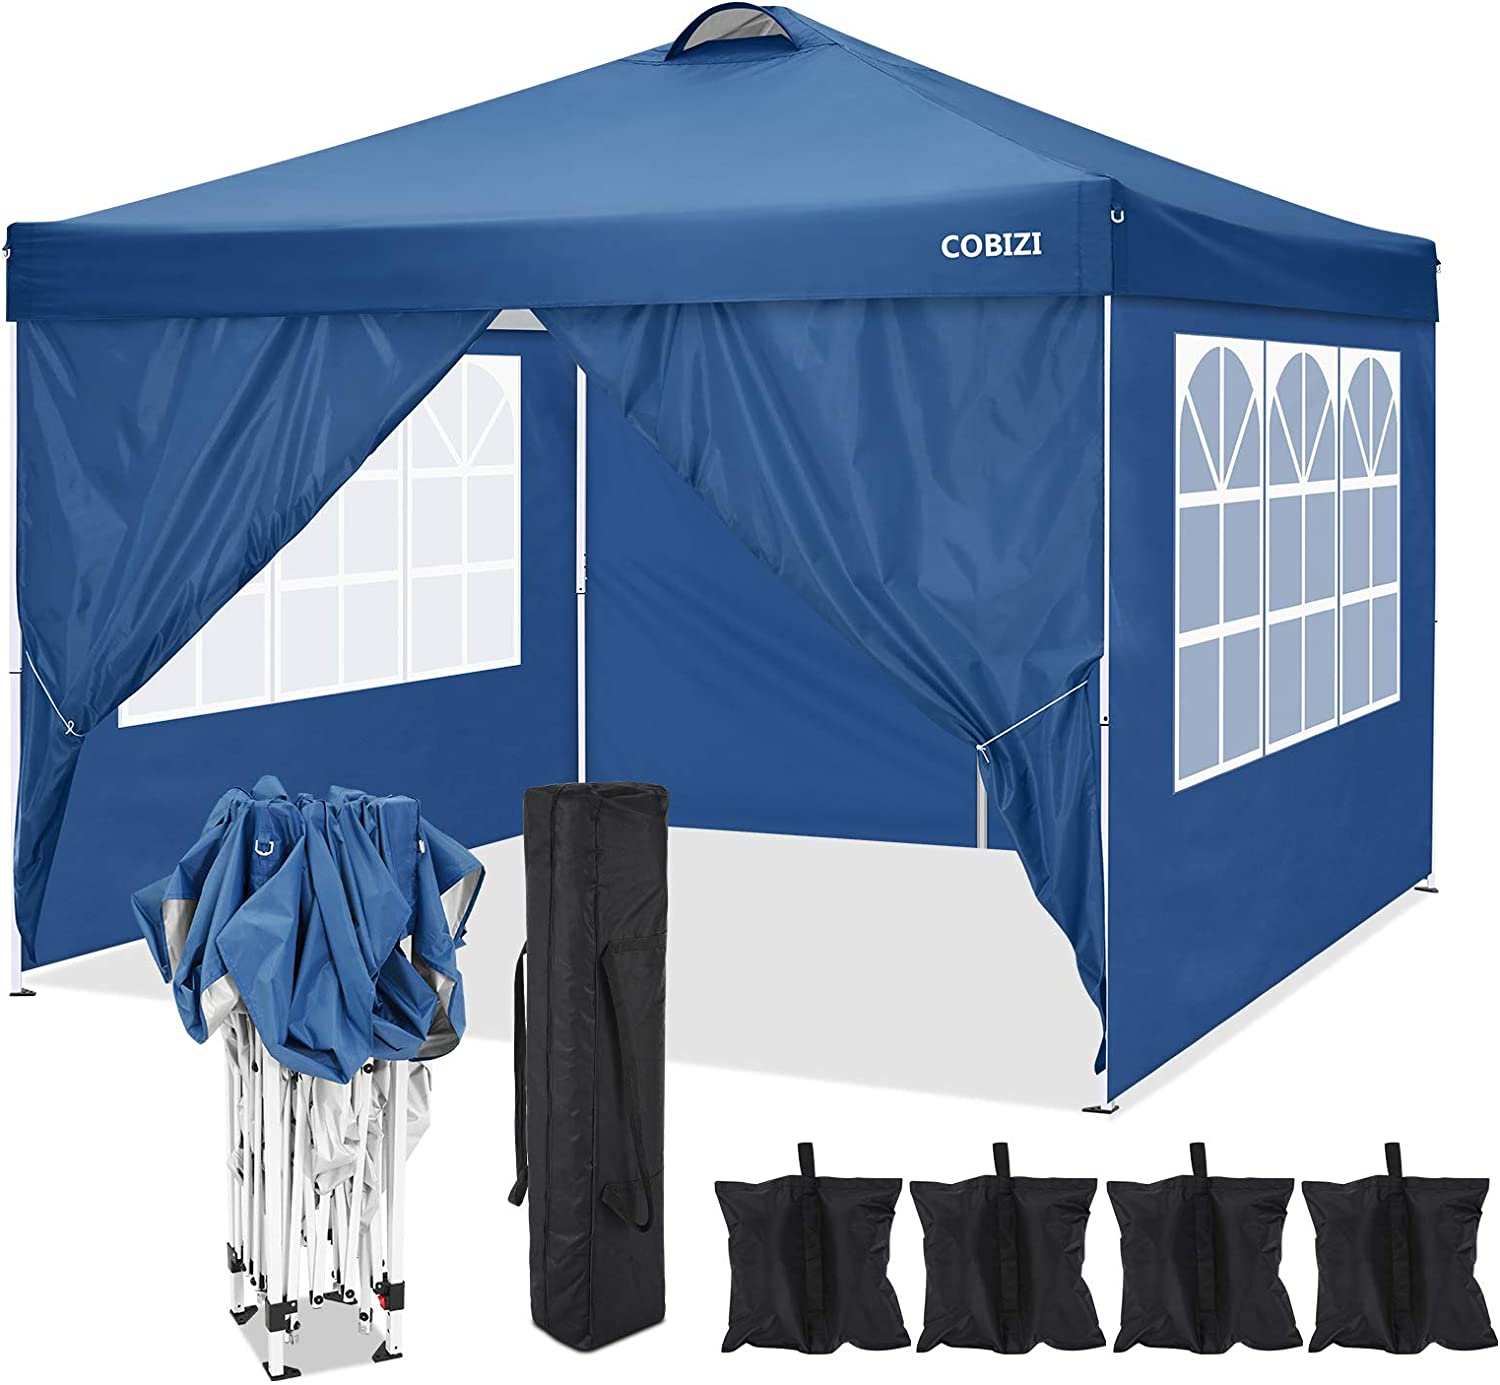 """COBIZI Pop-up Canopy Tent 10""""x10"""" Foldable 210D&600D Waterproof Oxford Cloth Awning Commercial Beach Garden Tent for Hiking, Camping, Fishing, picnics, Family outings (Blue)"""